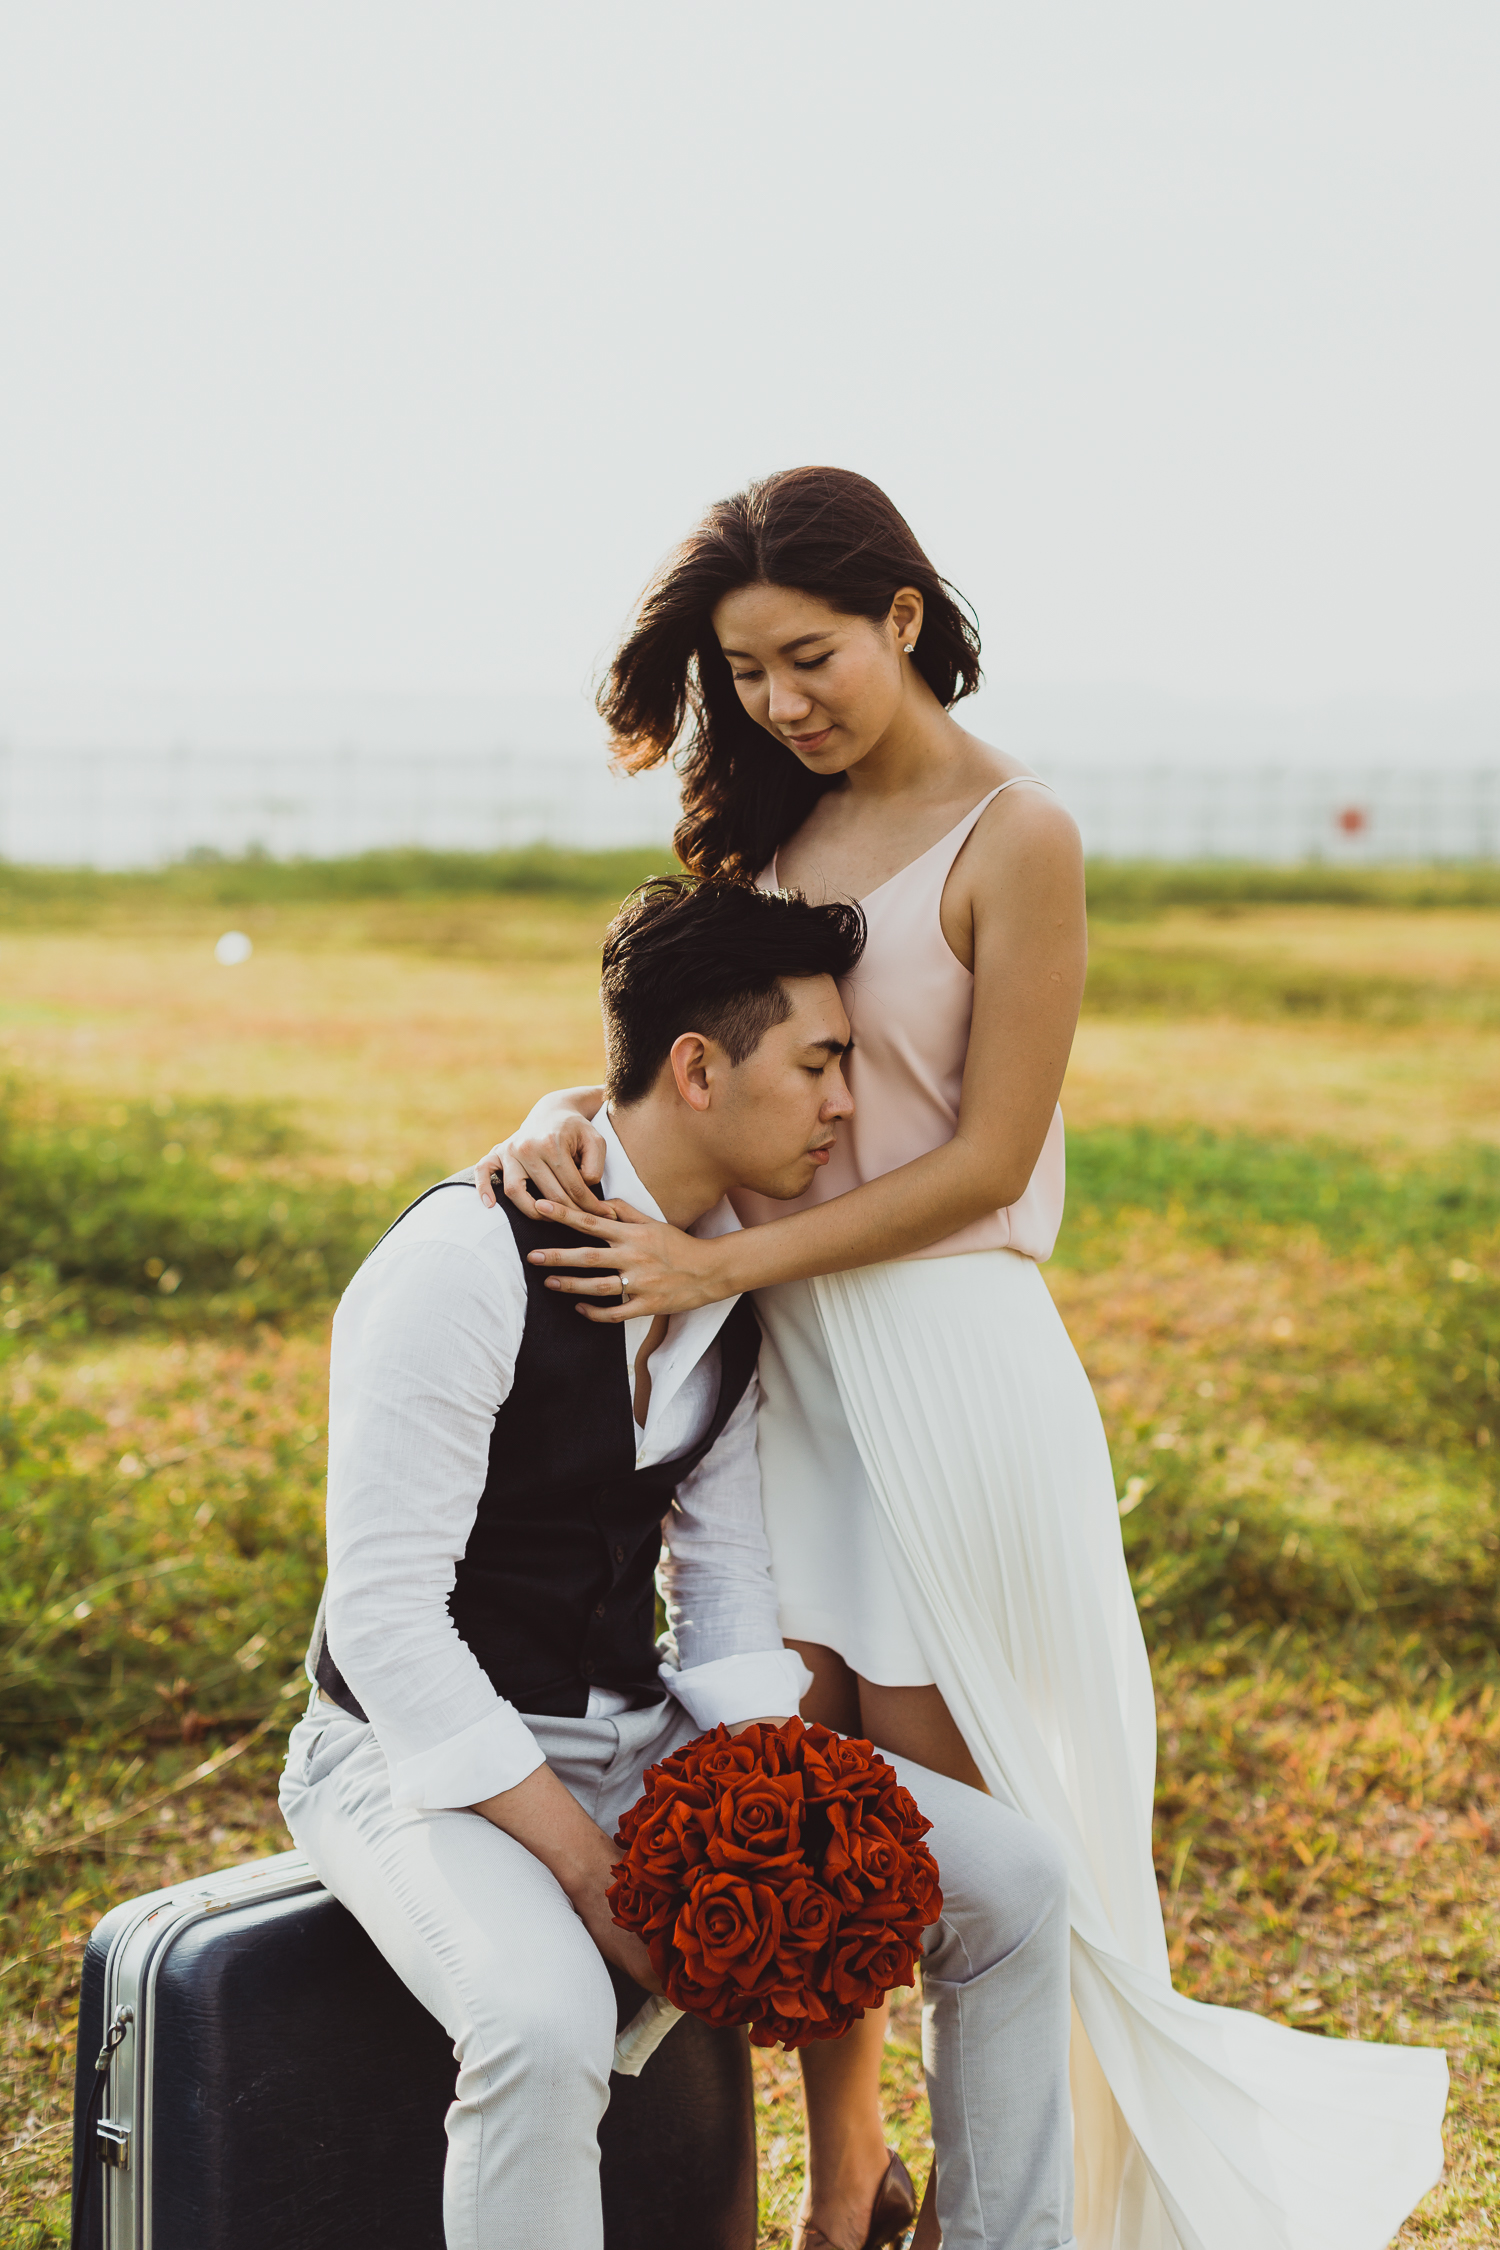 Singapore+Pre+Wedding+Photographer+Jeremiah+Christina-0038.jpg